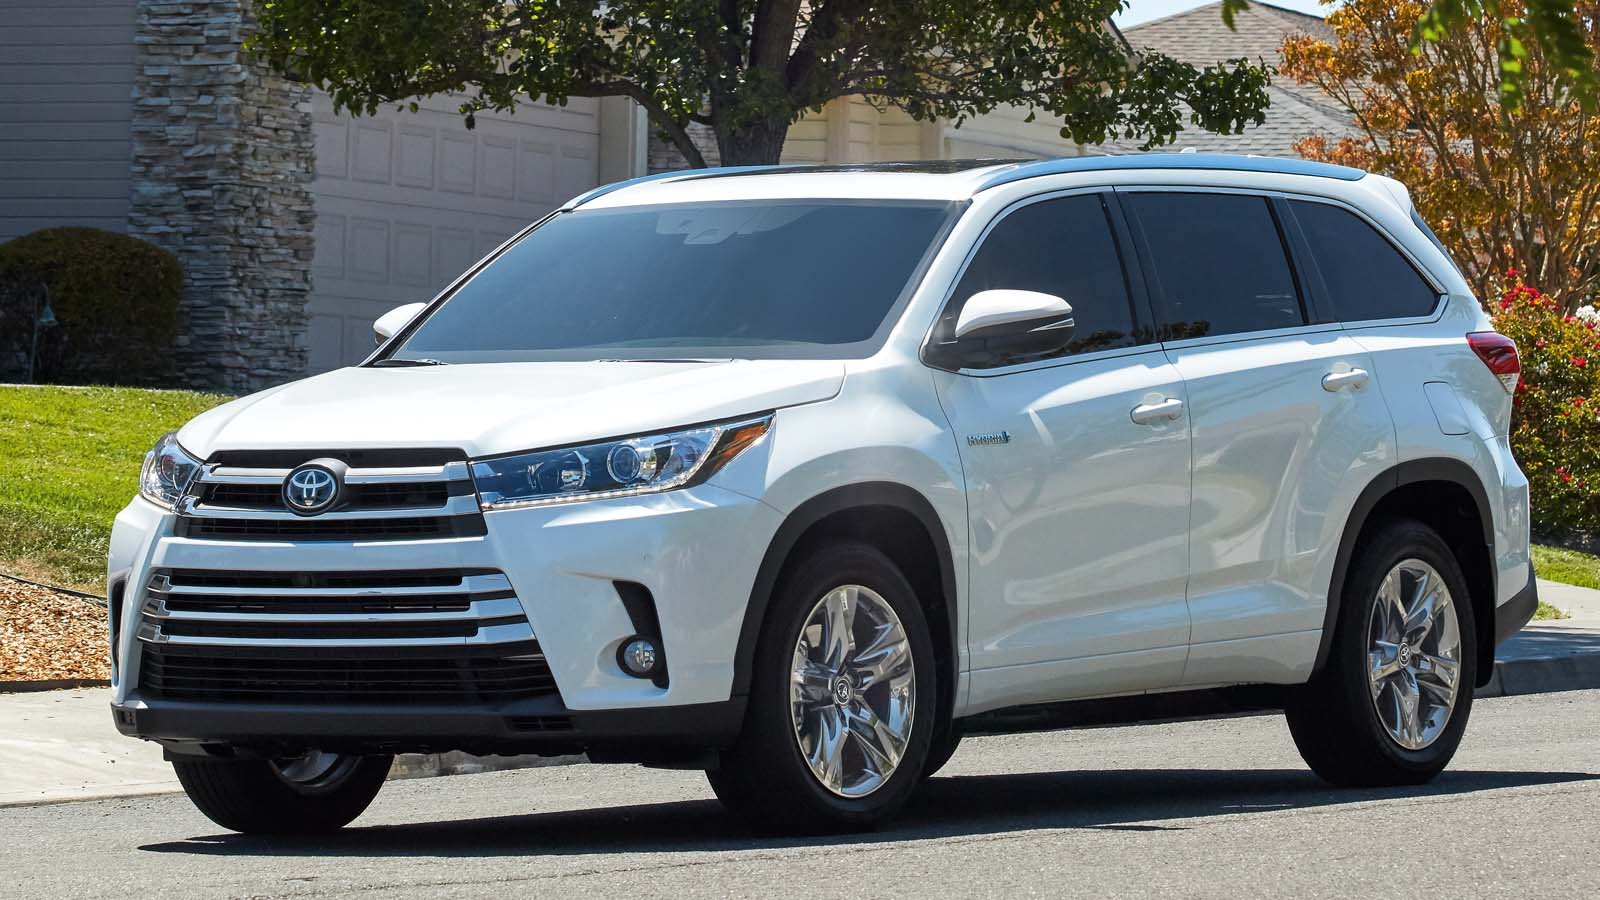 toyota highlander hybrid wins 1 suv award peruzzi toyota blog. Black Bedroom Furniture Sets. Home Design Ideas